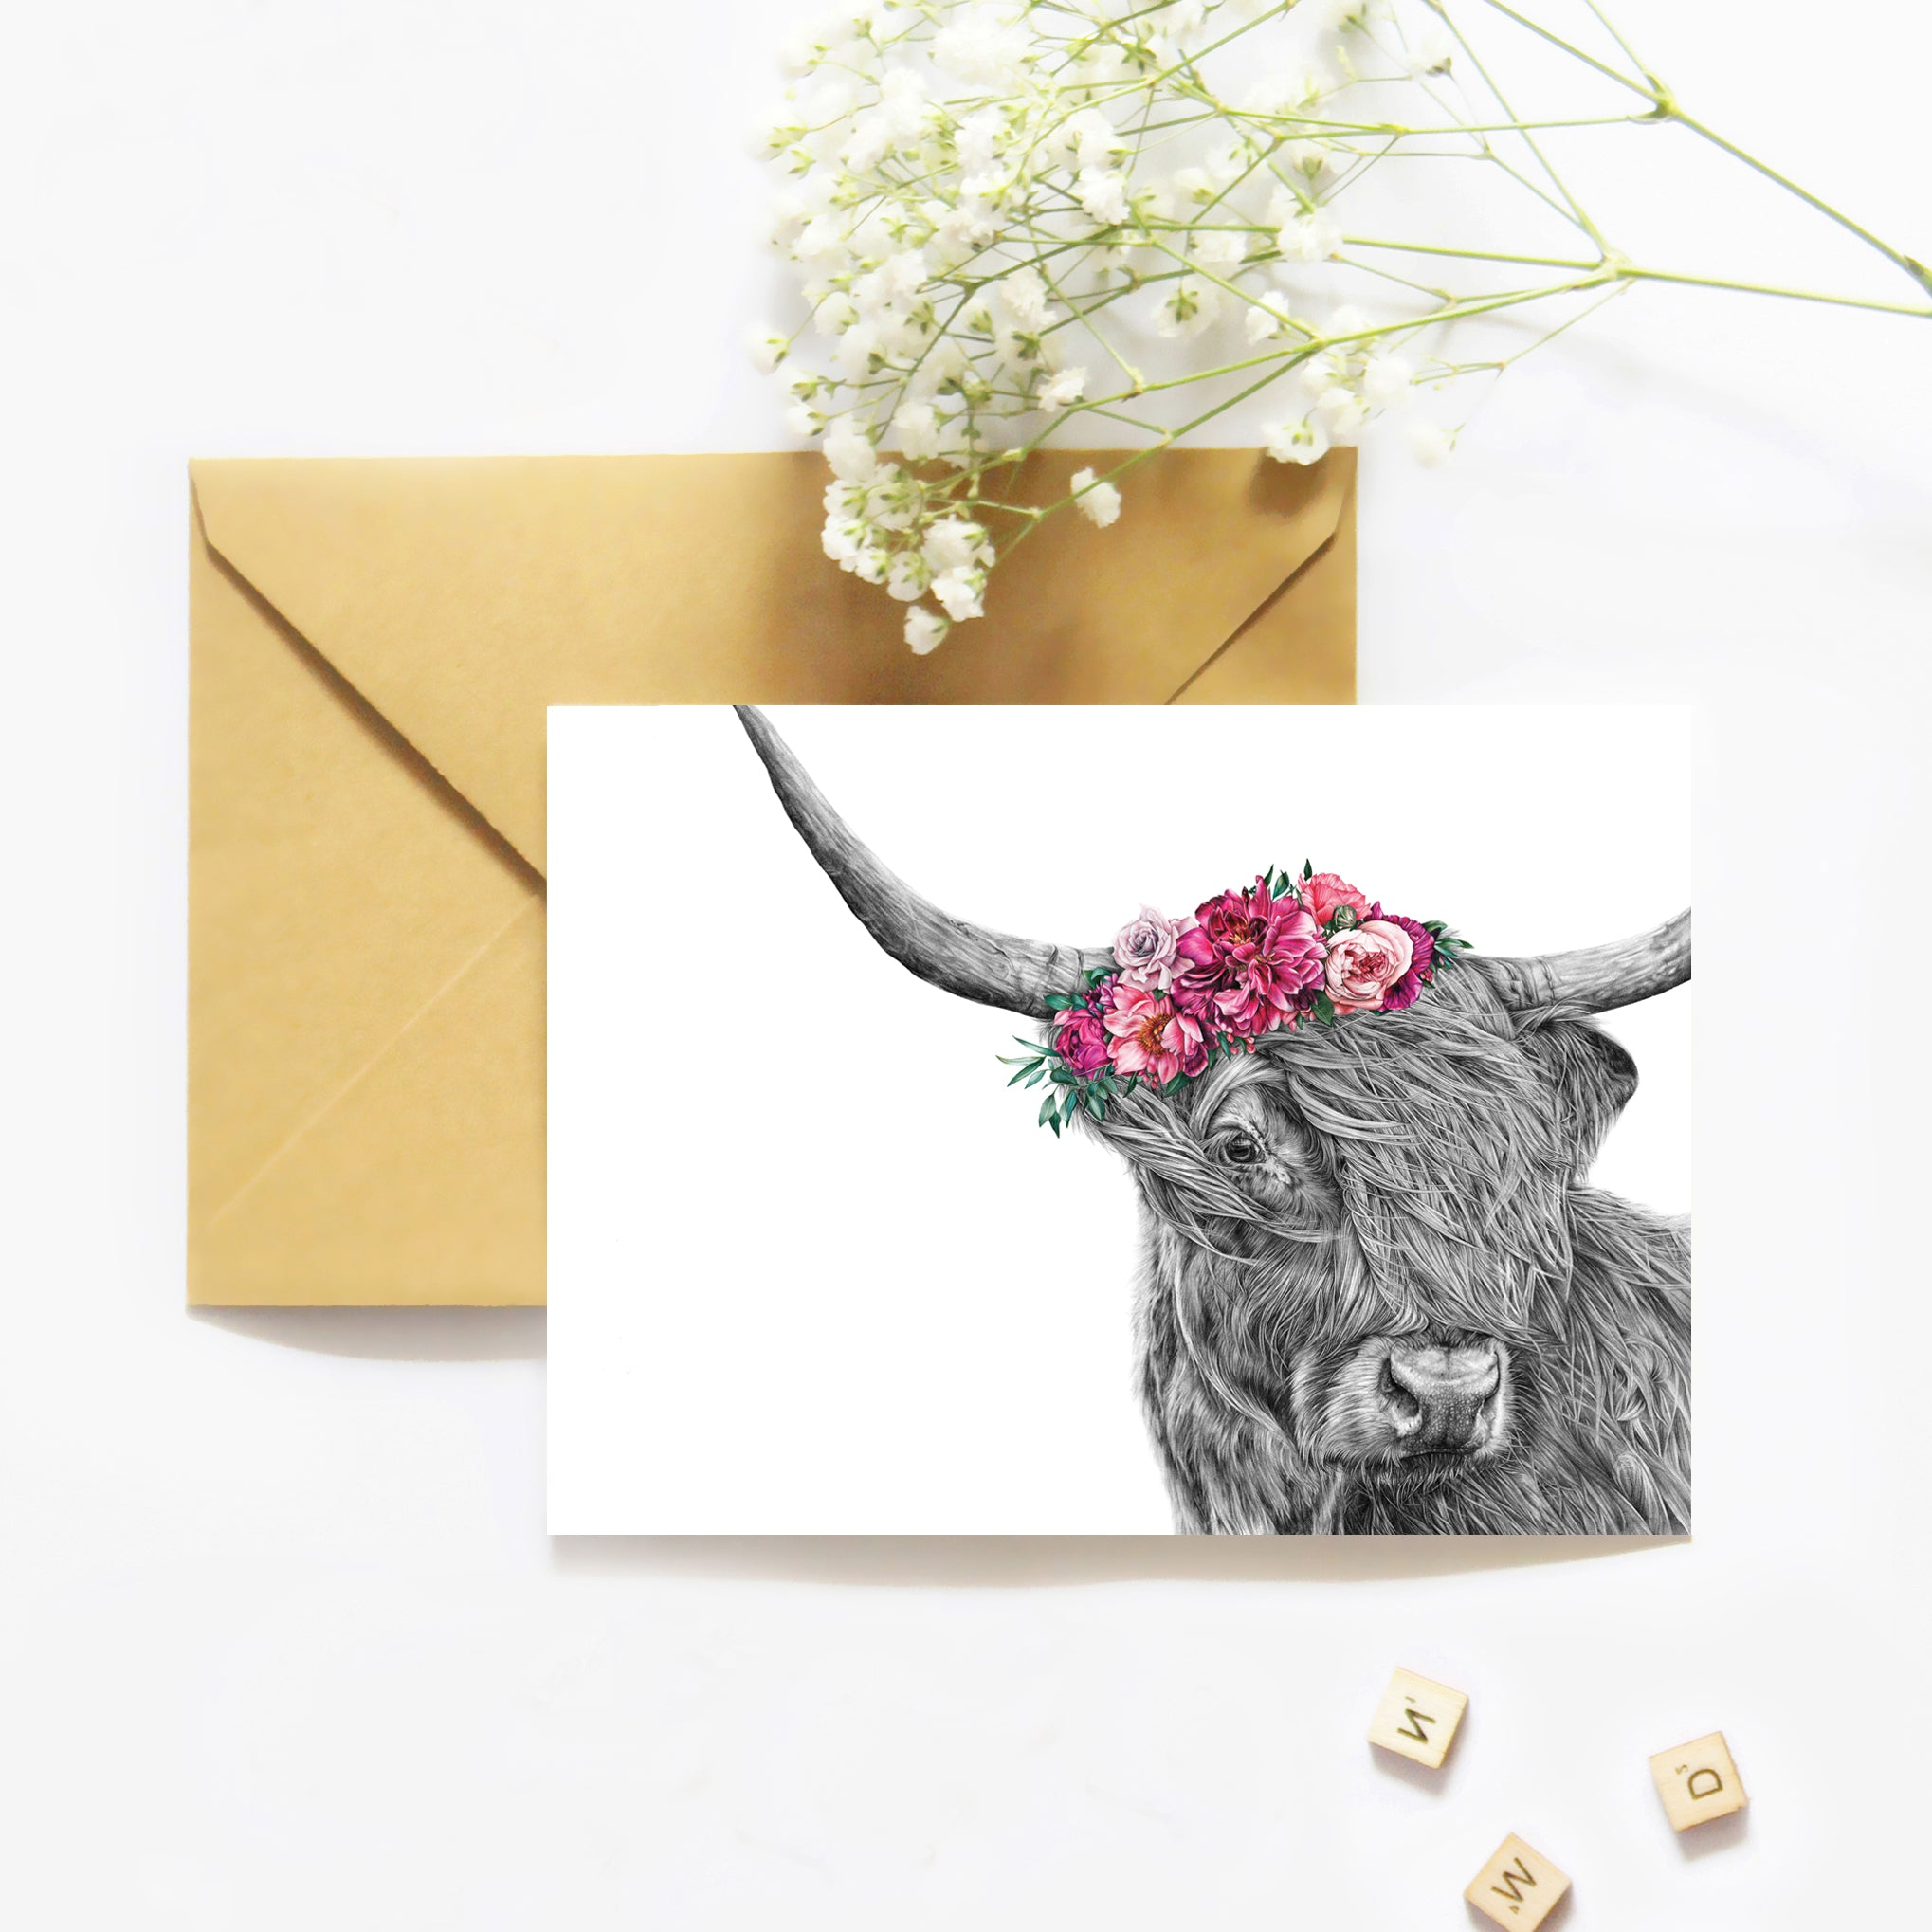 Heidi the Highland Cow - Greeting Card